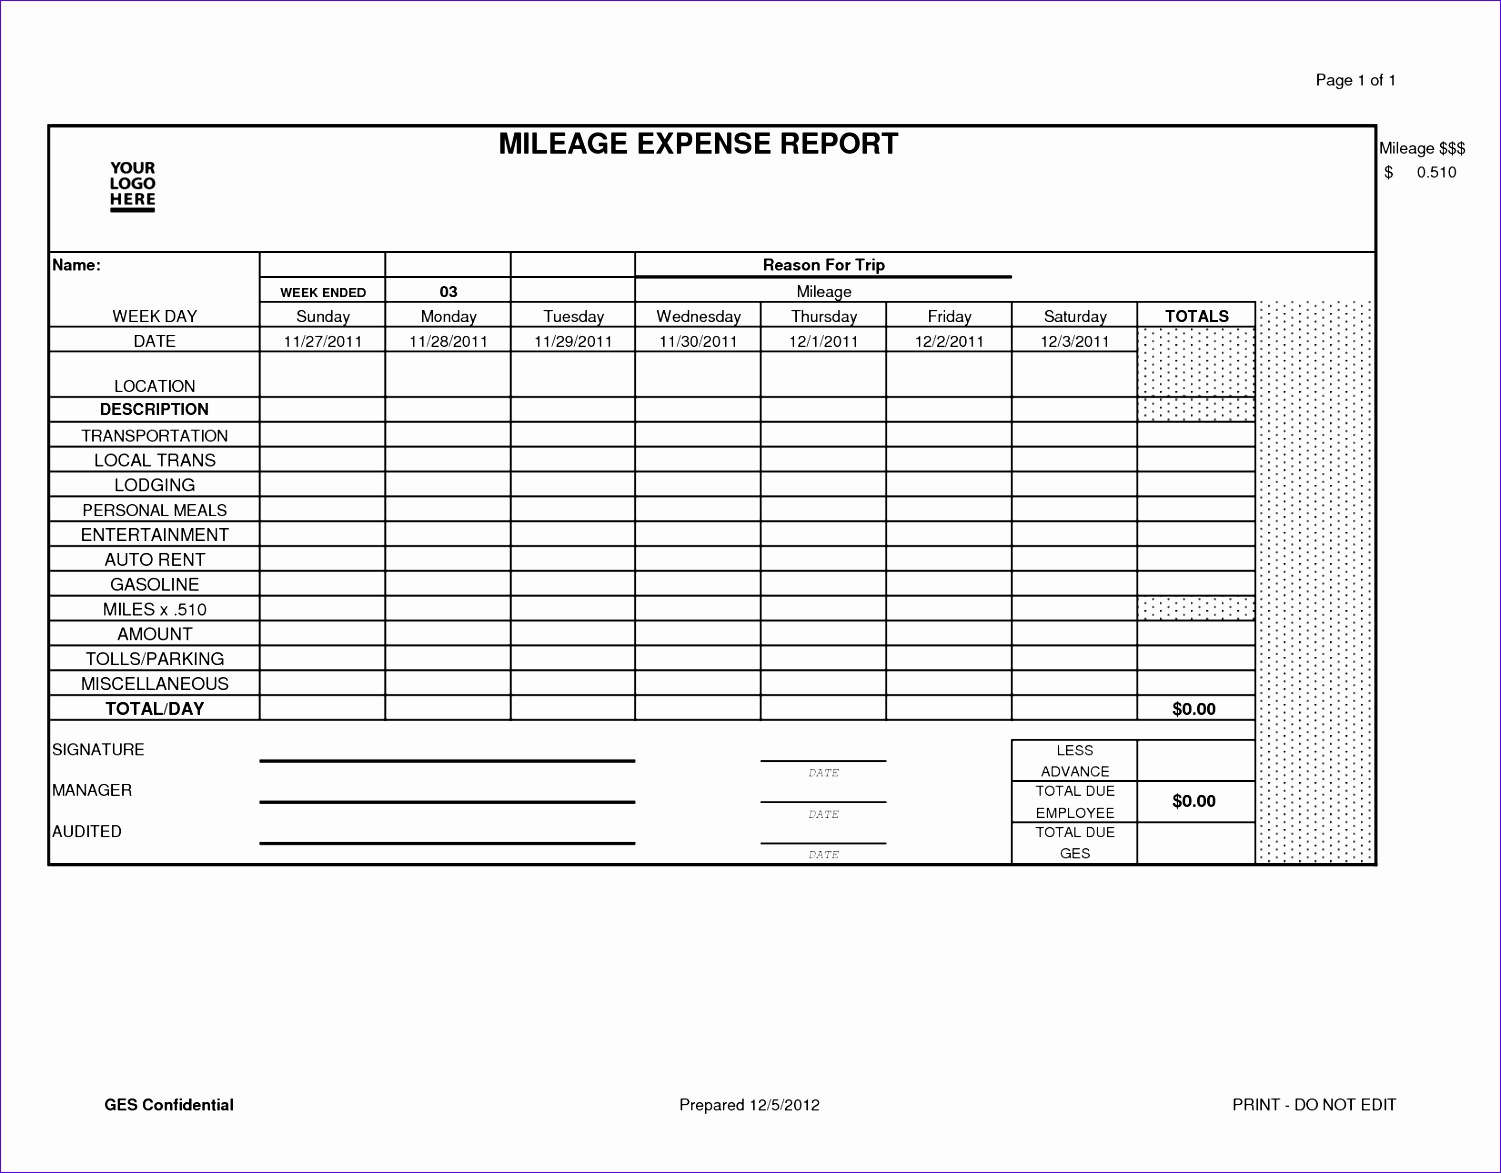 misc online list of business expenses template and free printable mileage reimbursement form